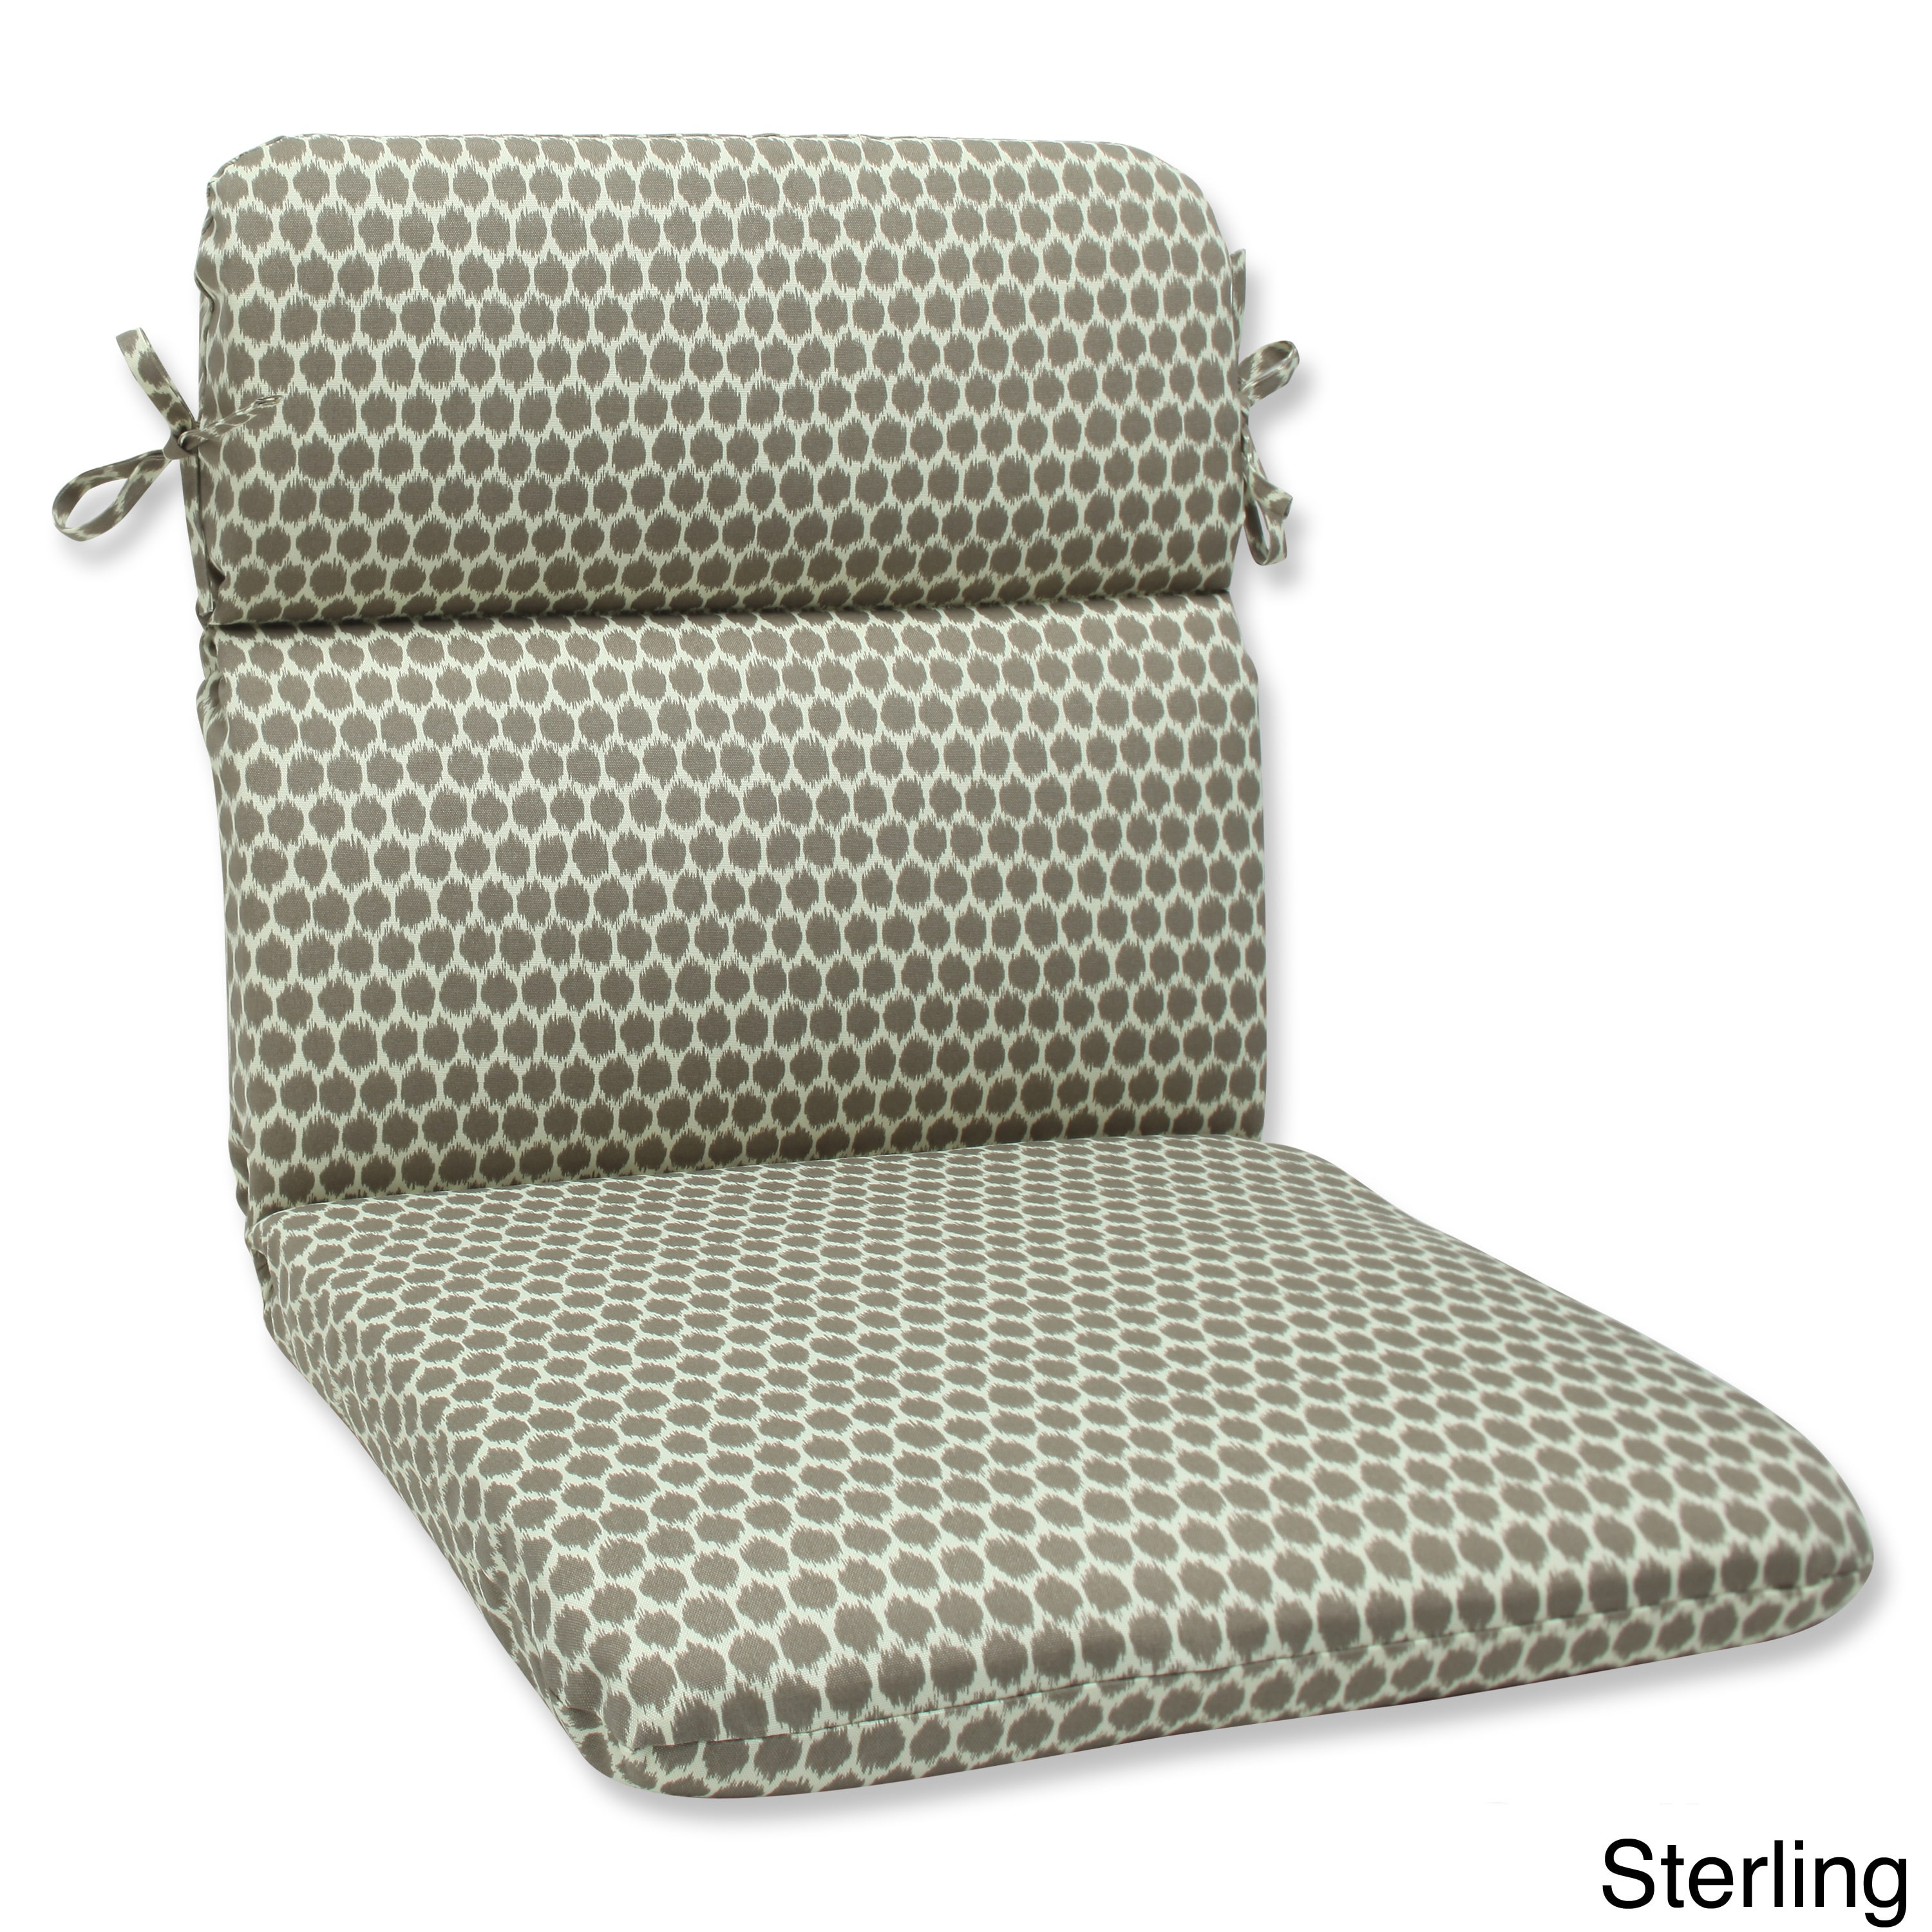 Pillow Perfect  Seeing Spots Rounded Corners Outdoor Chair Cushion